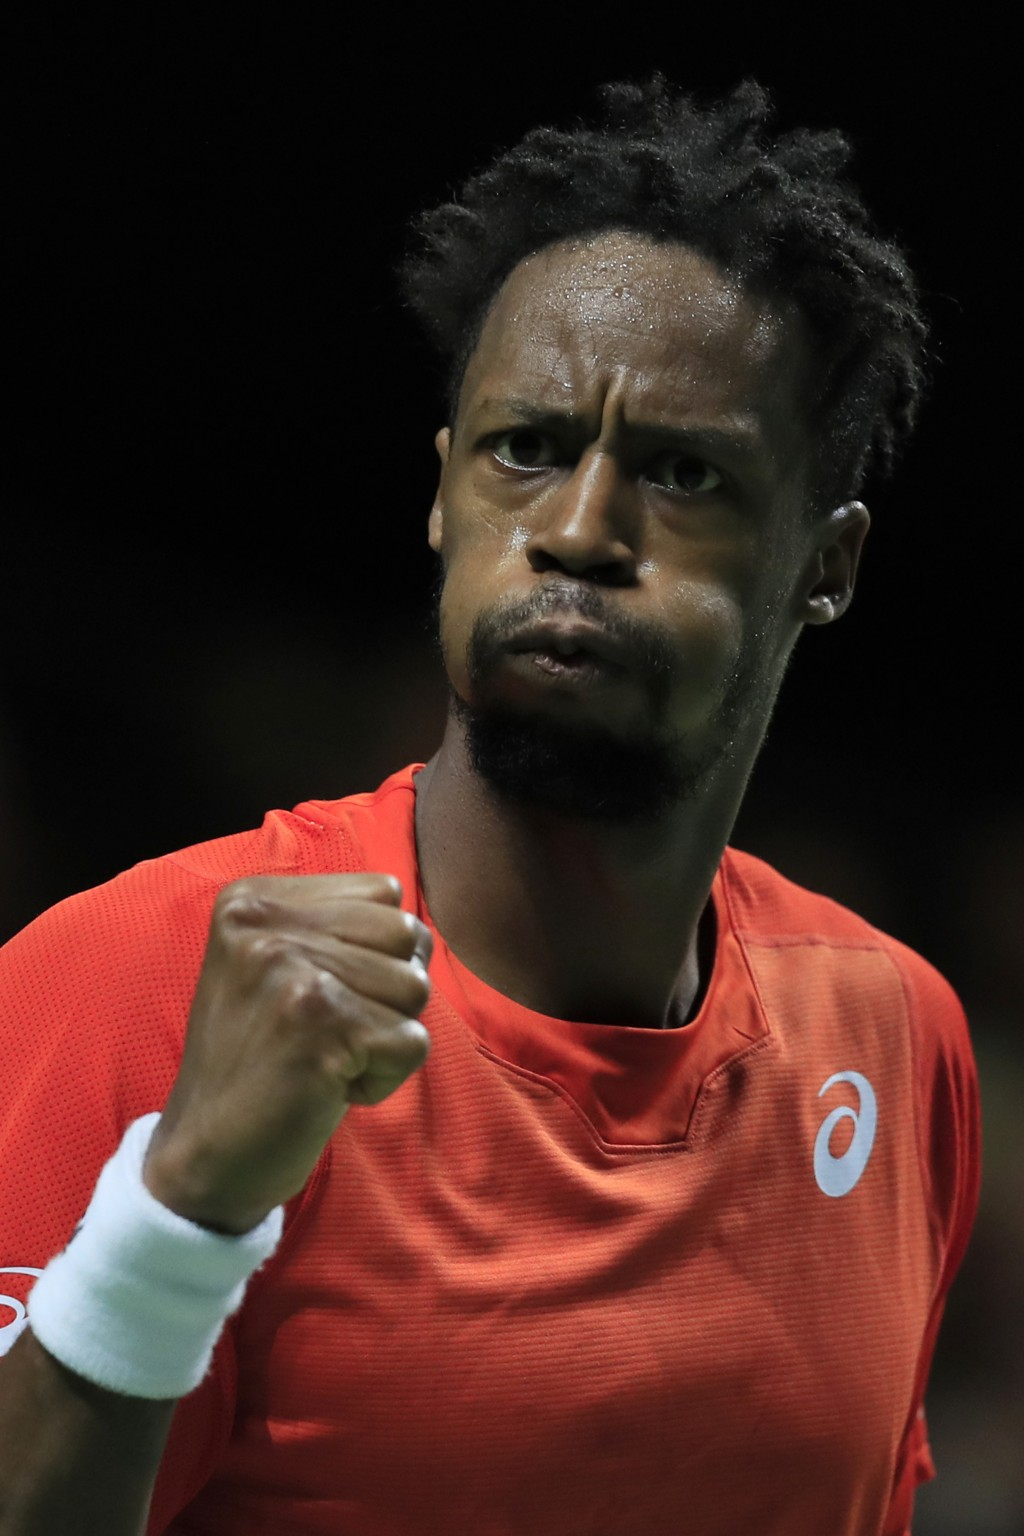 Gael Monfils of France clenches his fist after scoring a point against Stan Wawrinka of Switzerland in the men's singles final of the ABN AMRO world t...